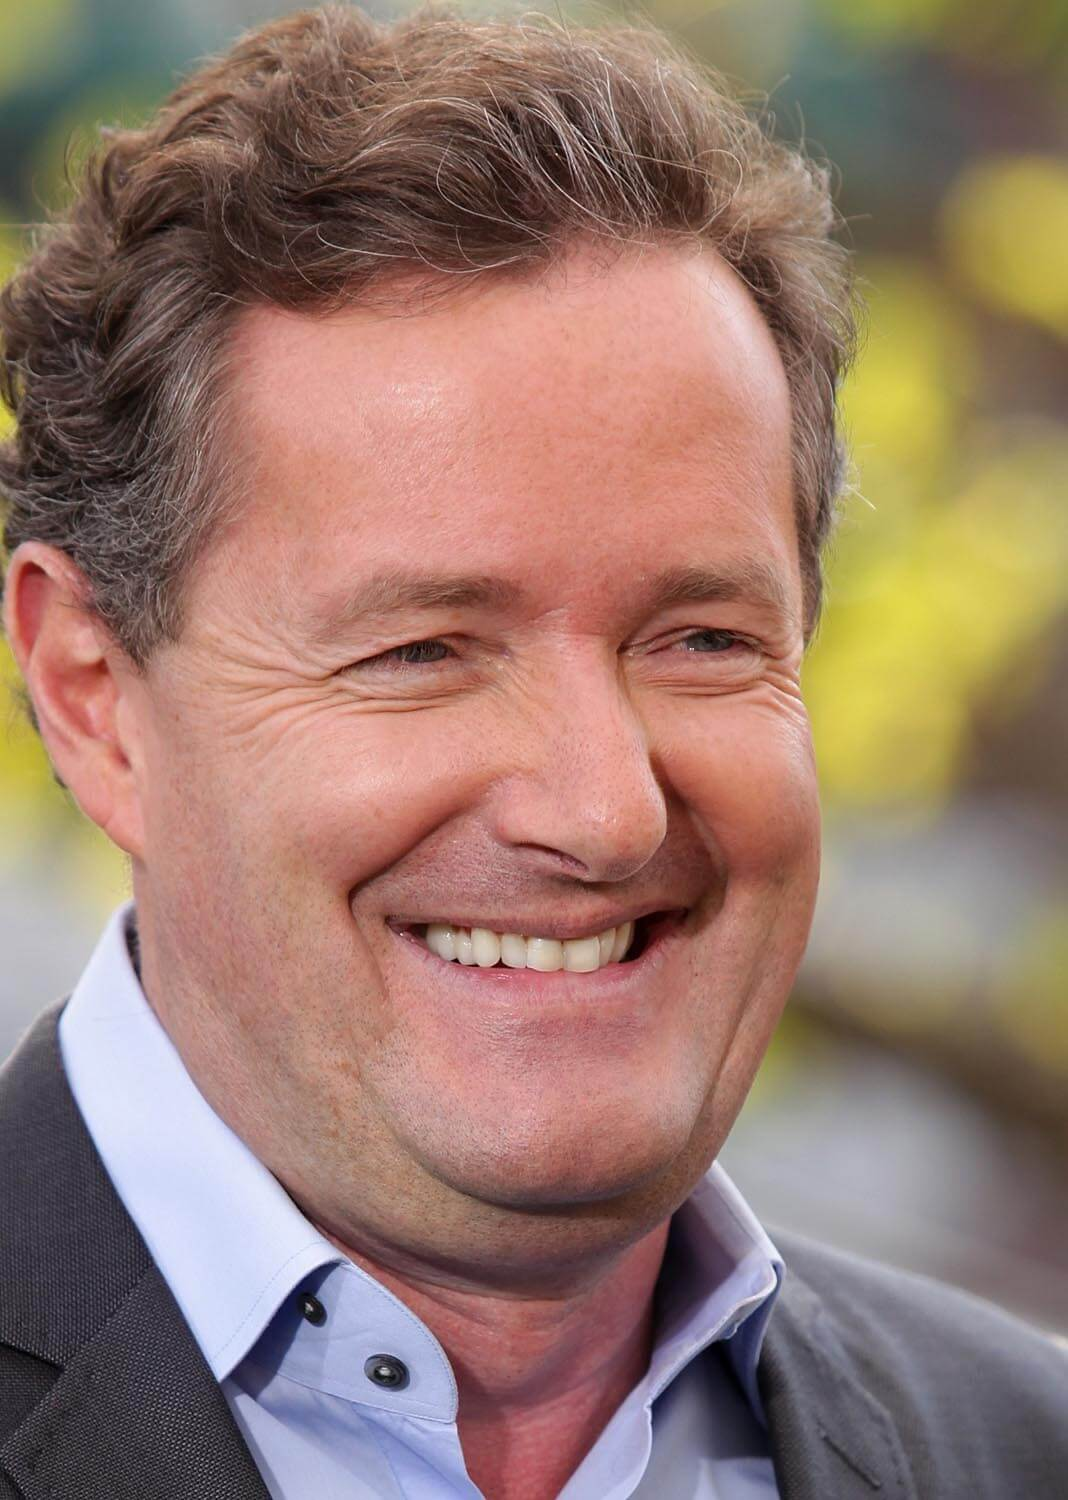 PIERS Morgan is known for being very opinionated on Good Morning Britain on Twitter on Arsenal and pretty much any other subject he discusses or show